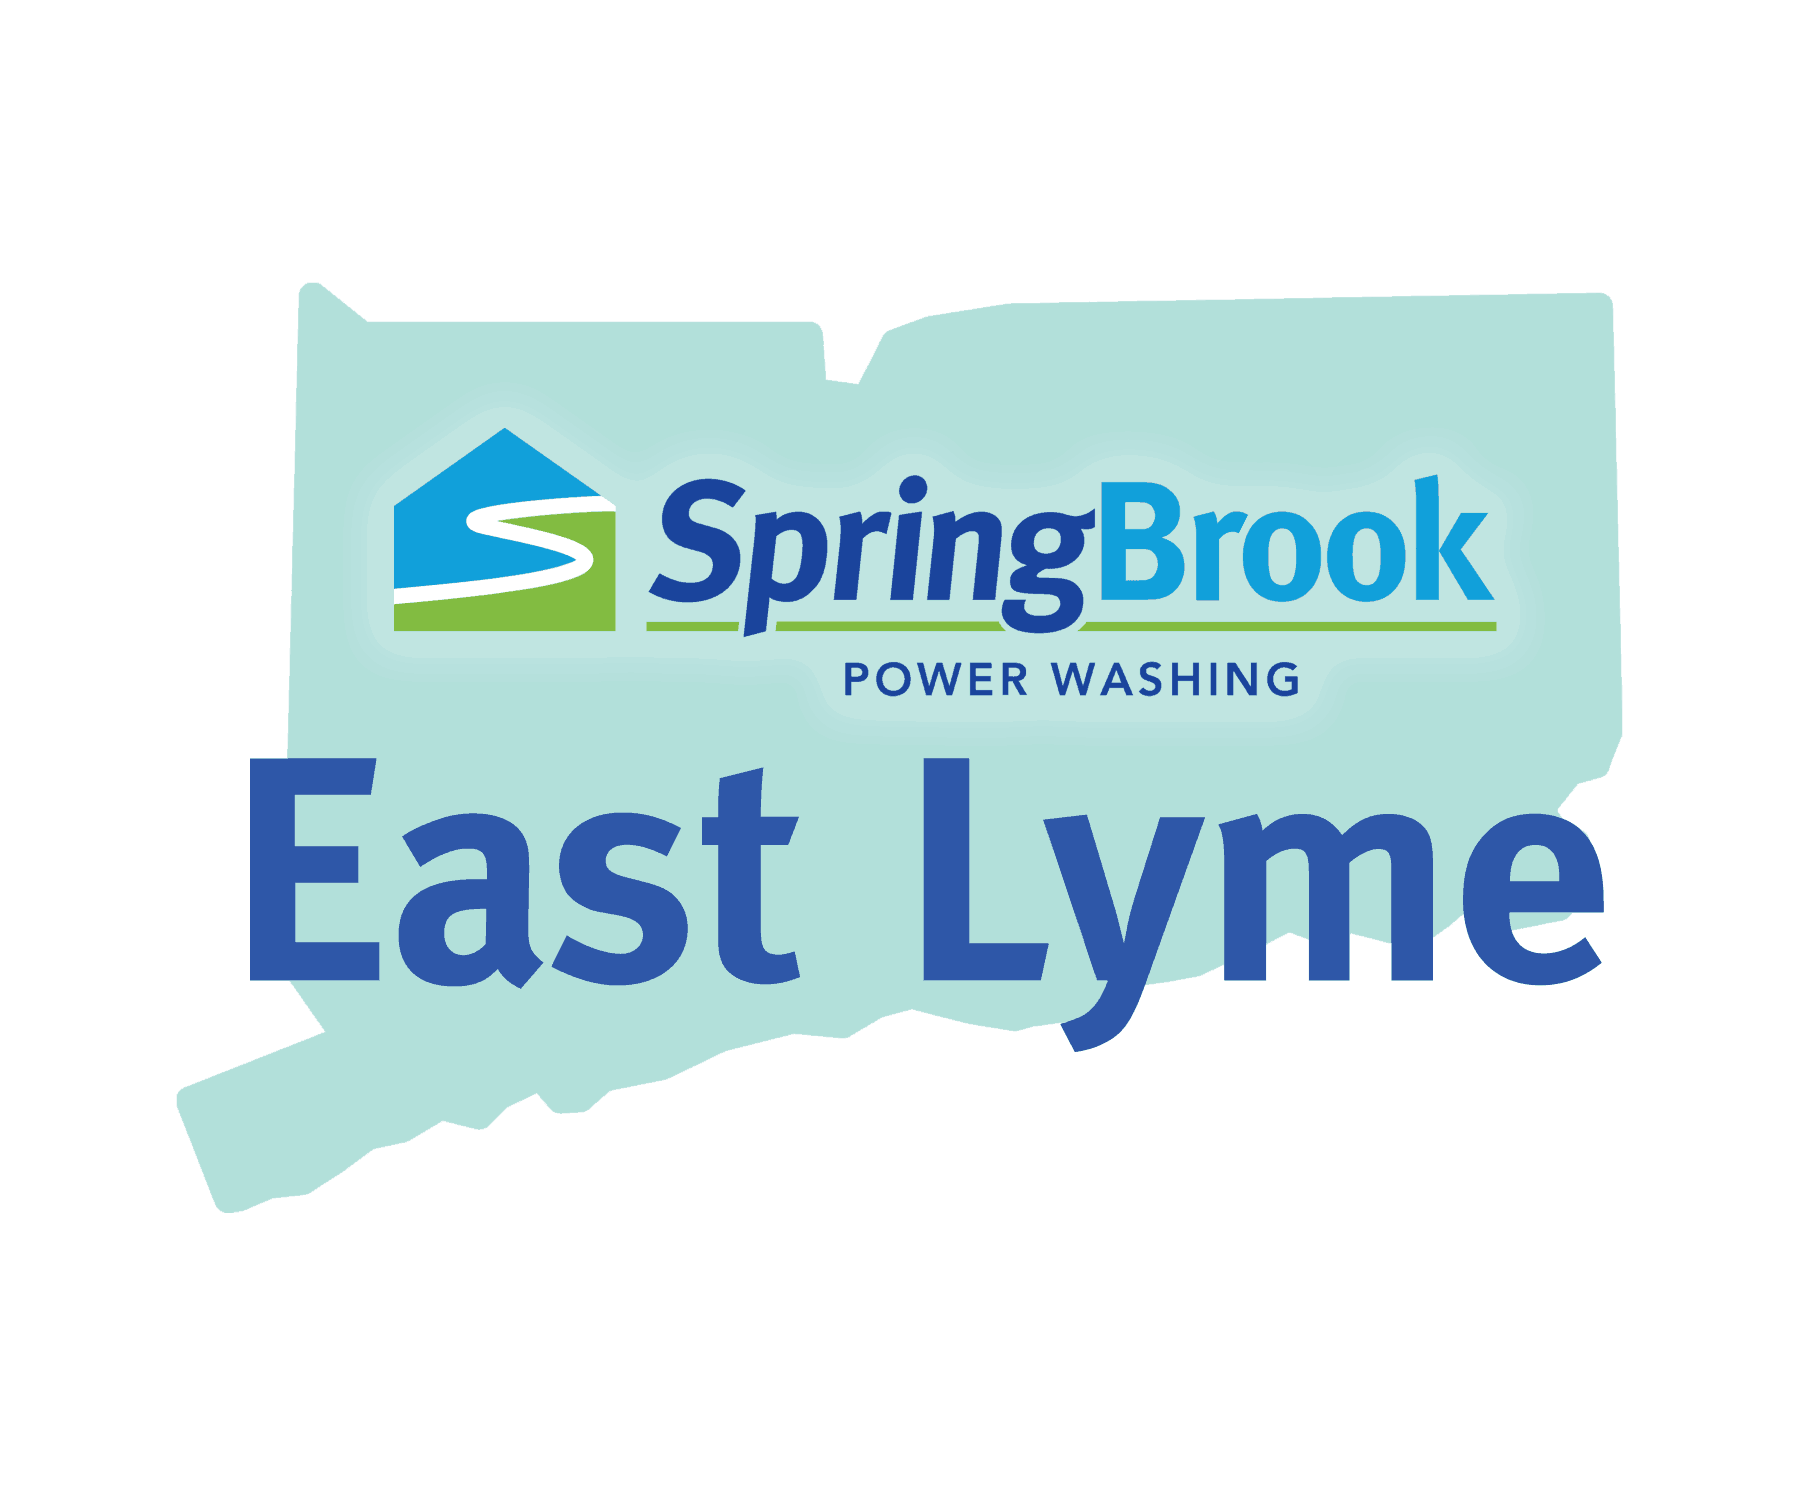 Springbrook Power Washing East Lyme Connecticut